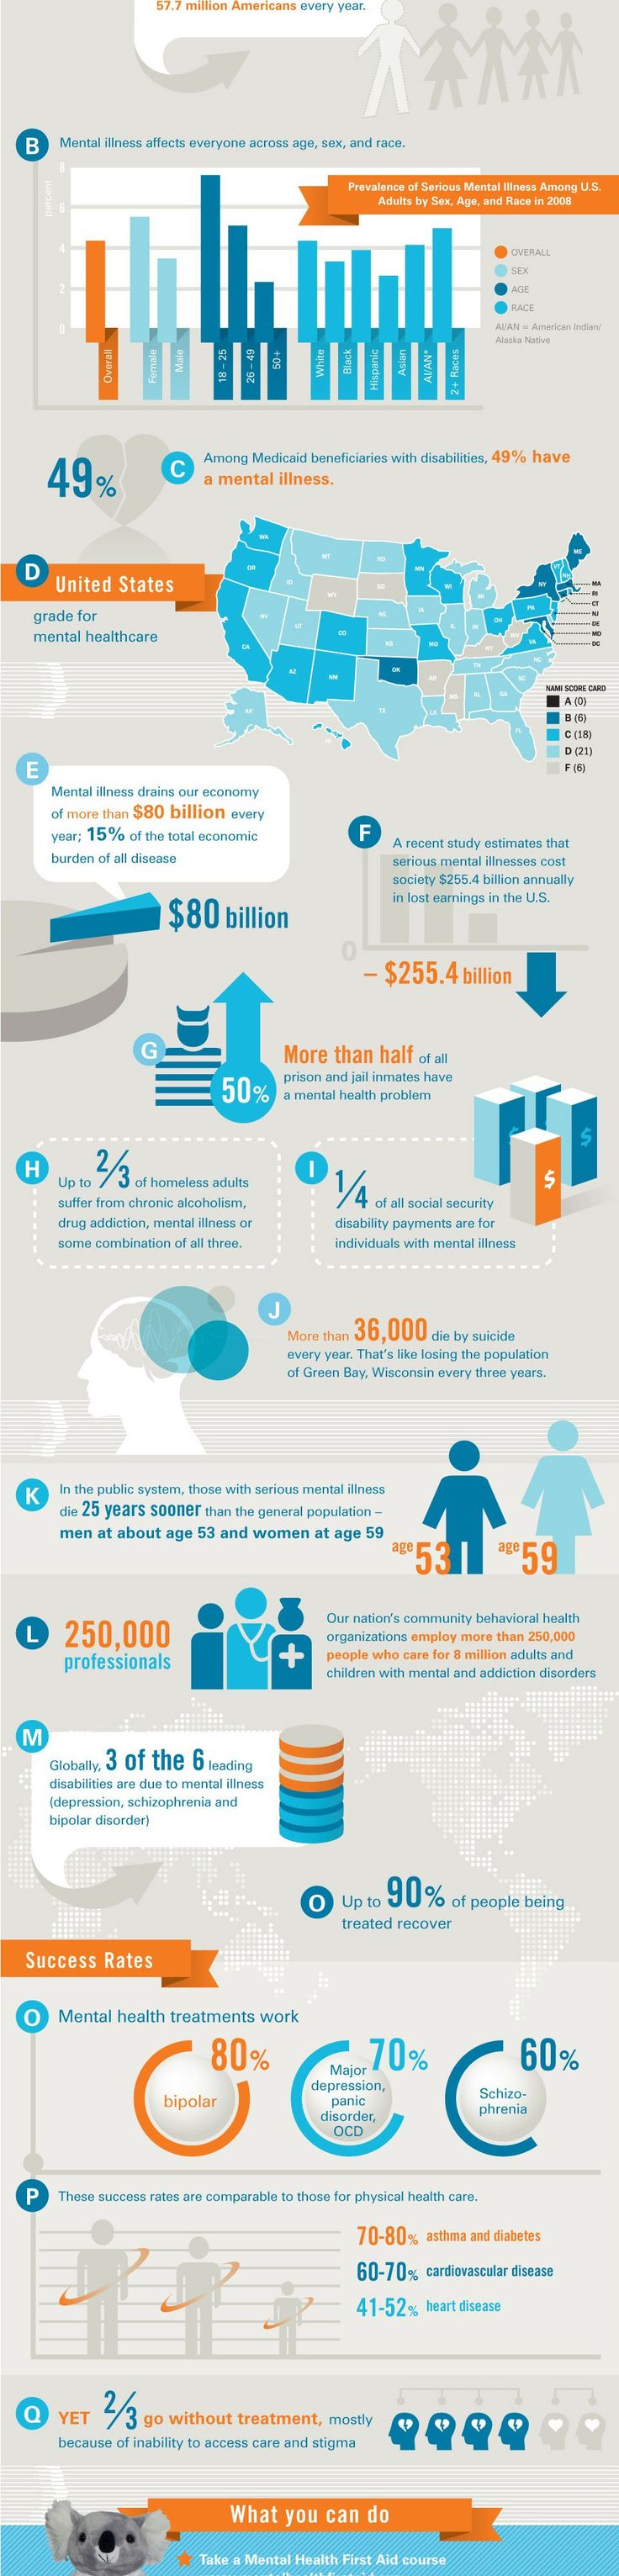 Mental Health Statistics Infographic - complex info, complementary color scheme